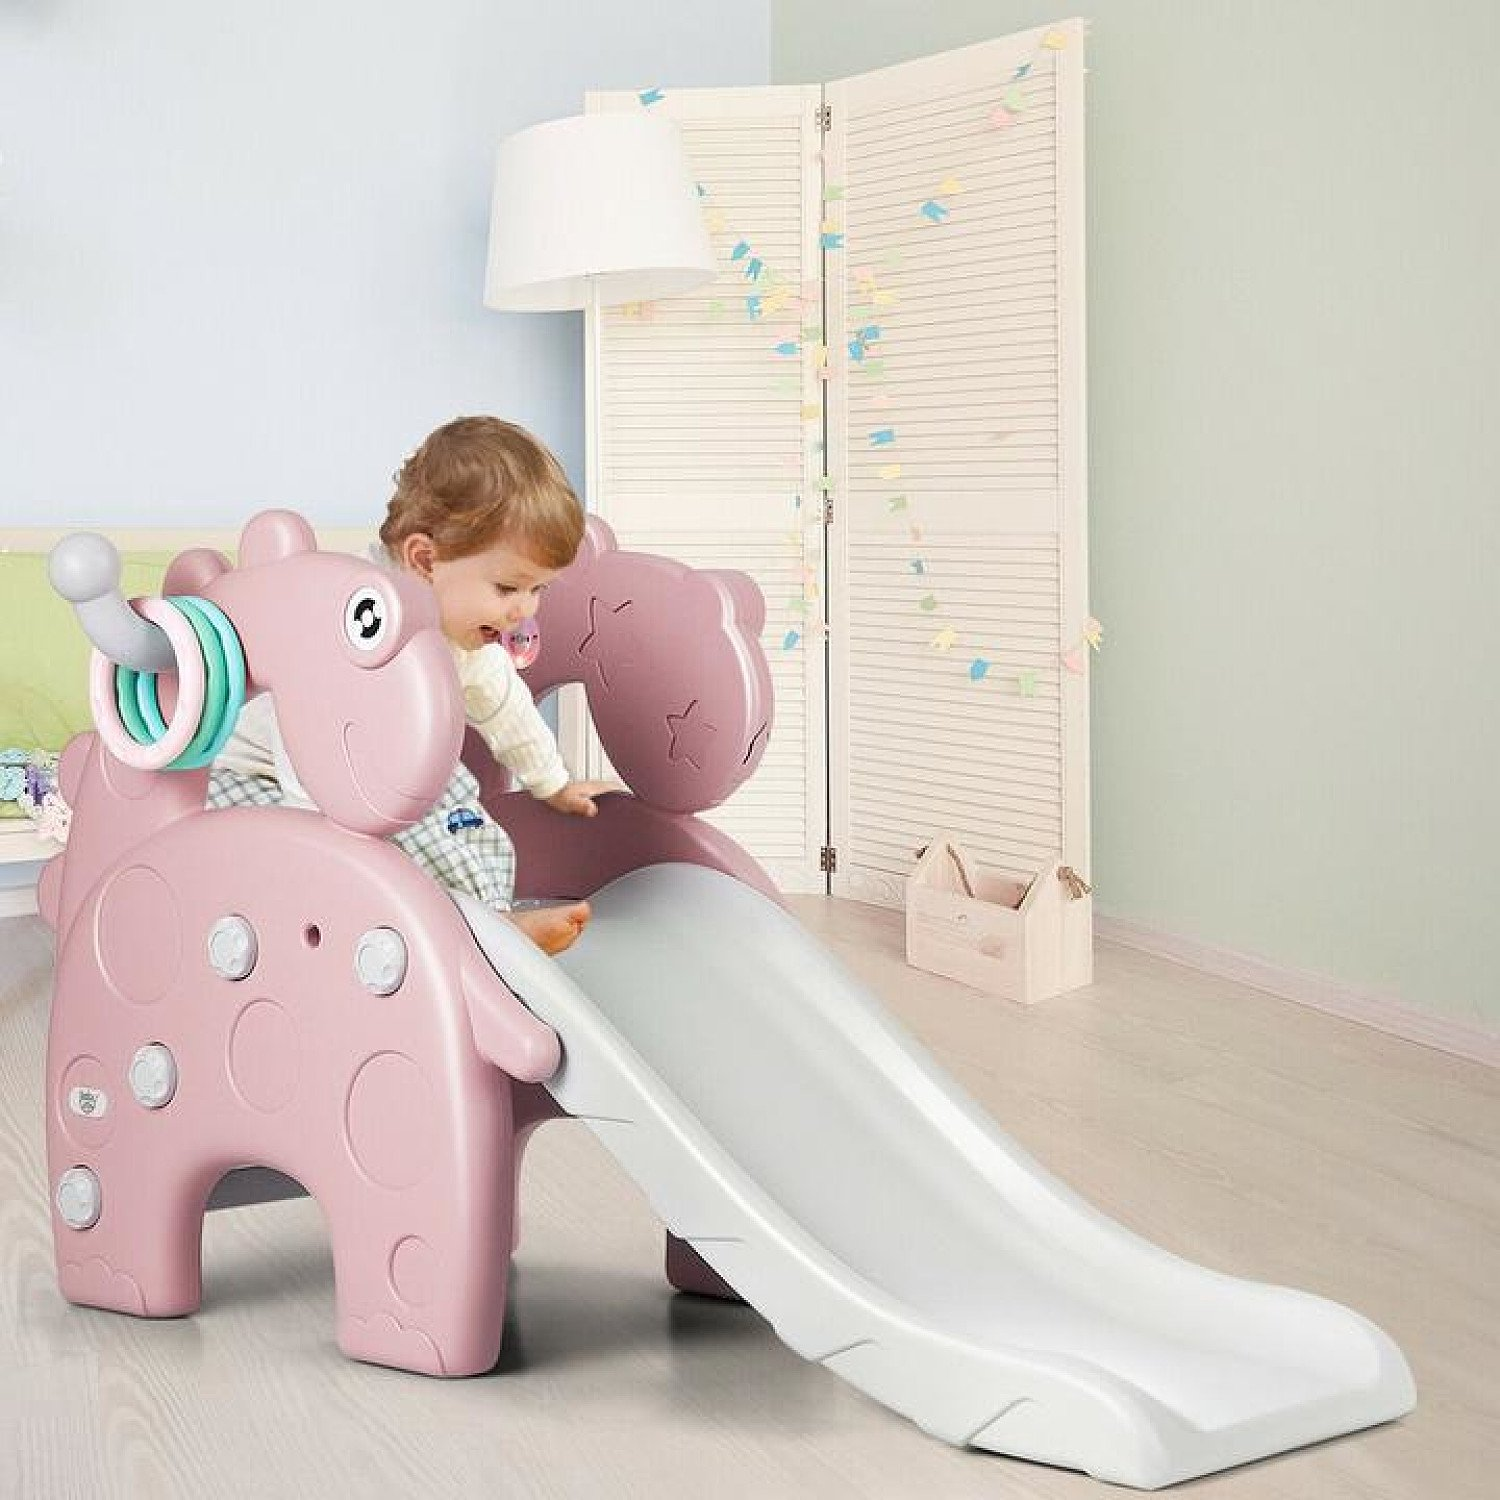 Pink 4-in-1 Kids Dinosaur shaped Slide, with Climbing, Basketball Hoop, and Ring Toss Game Free Post